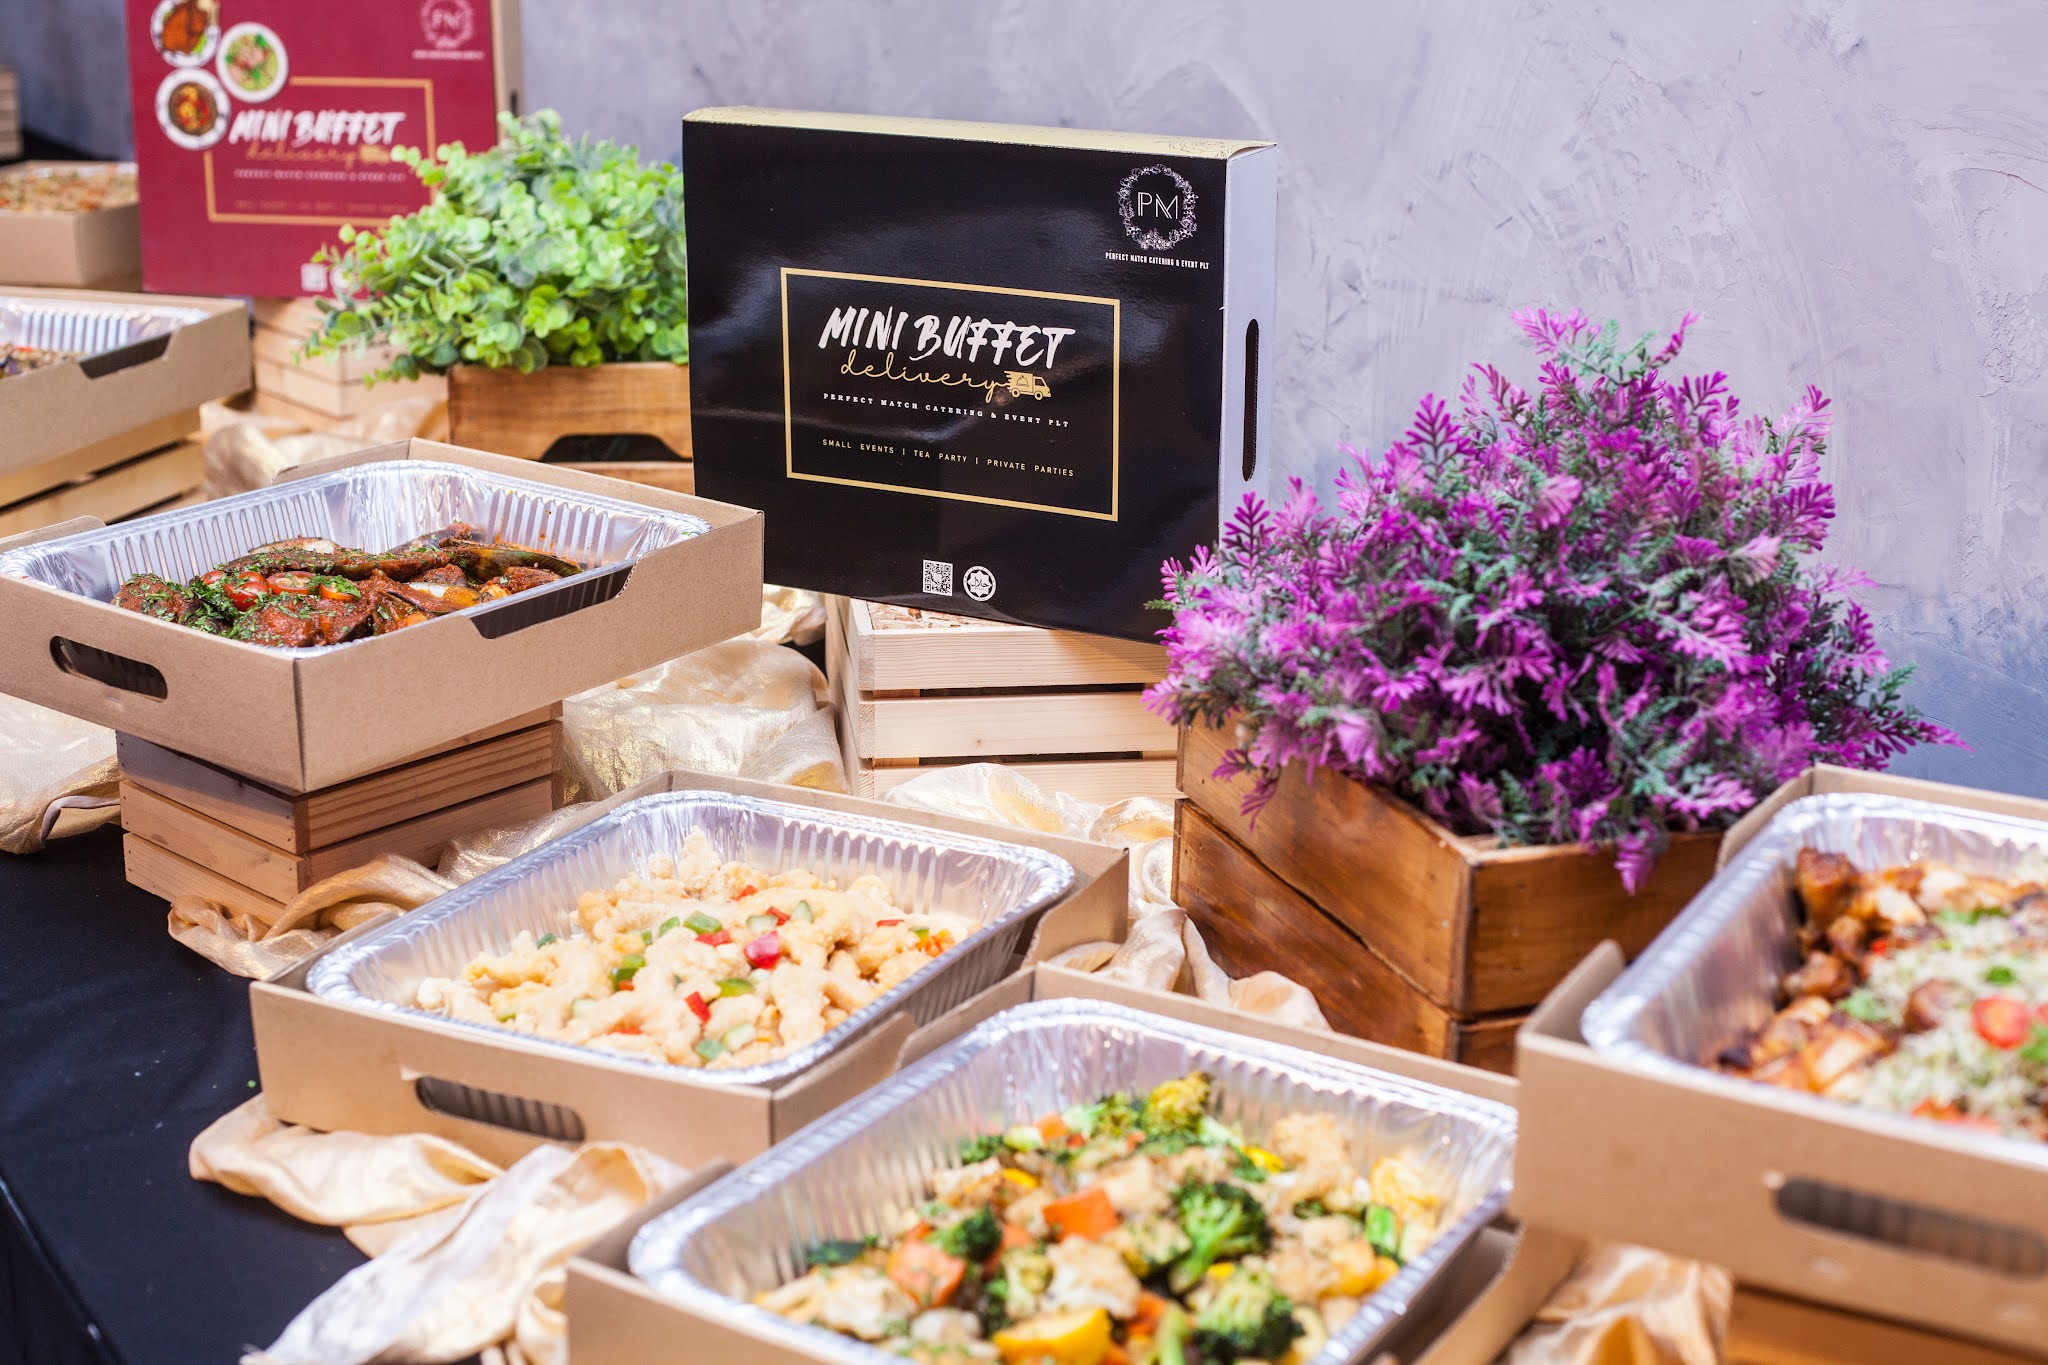 perfect match catering: mini buffets to fill all your private event catering needs